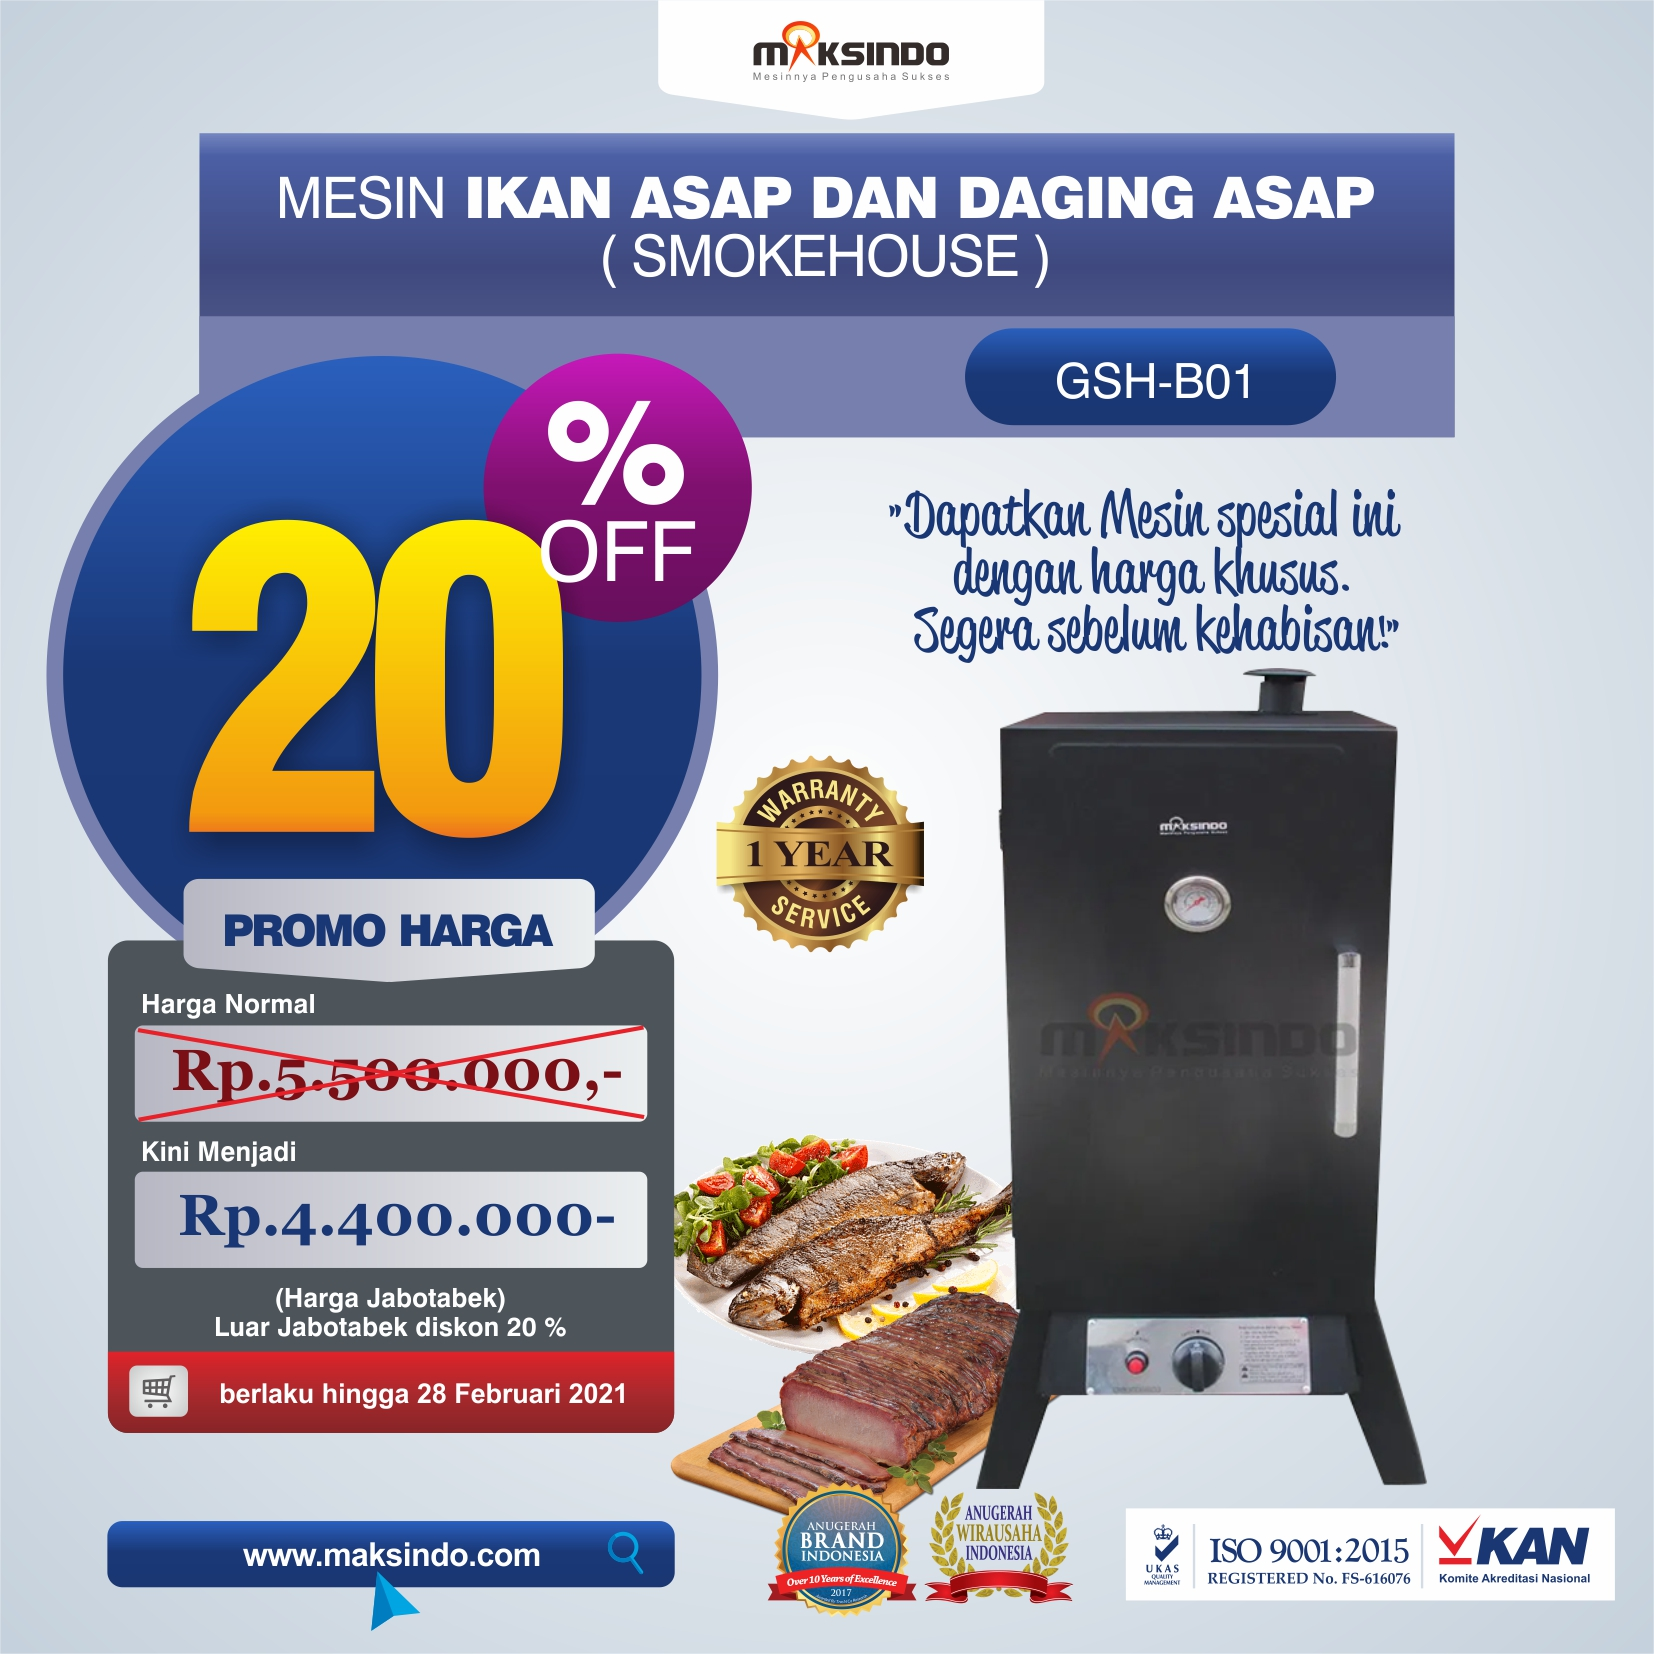 Mesin Ikan Asap dan Daging Asap (Smokehouse)- GSH-B01